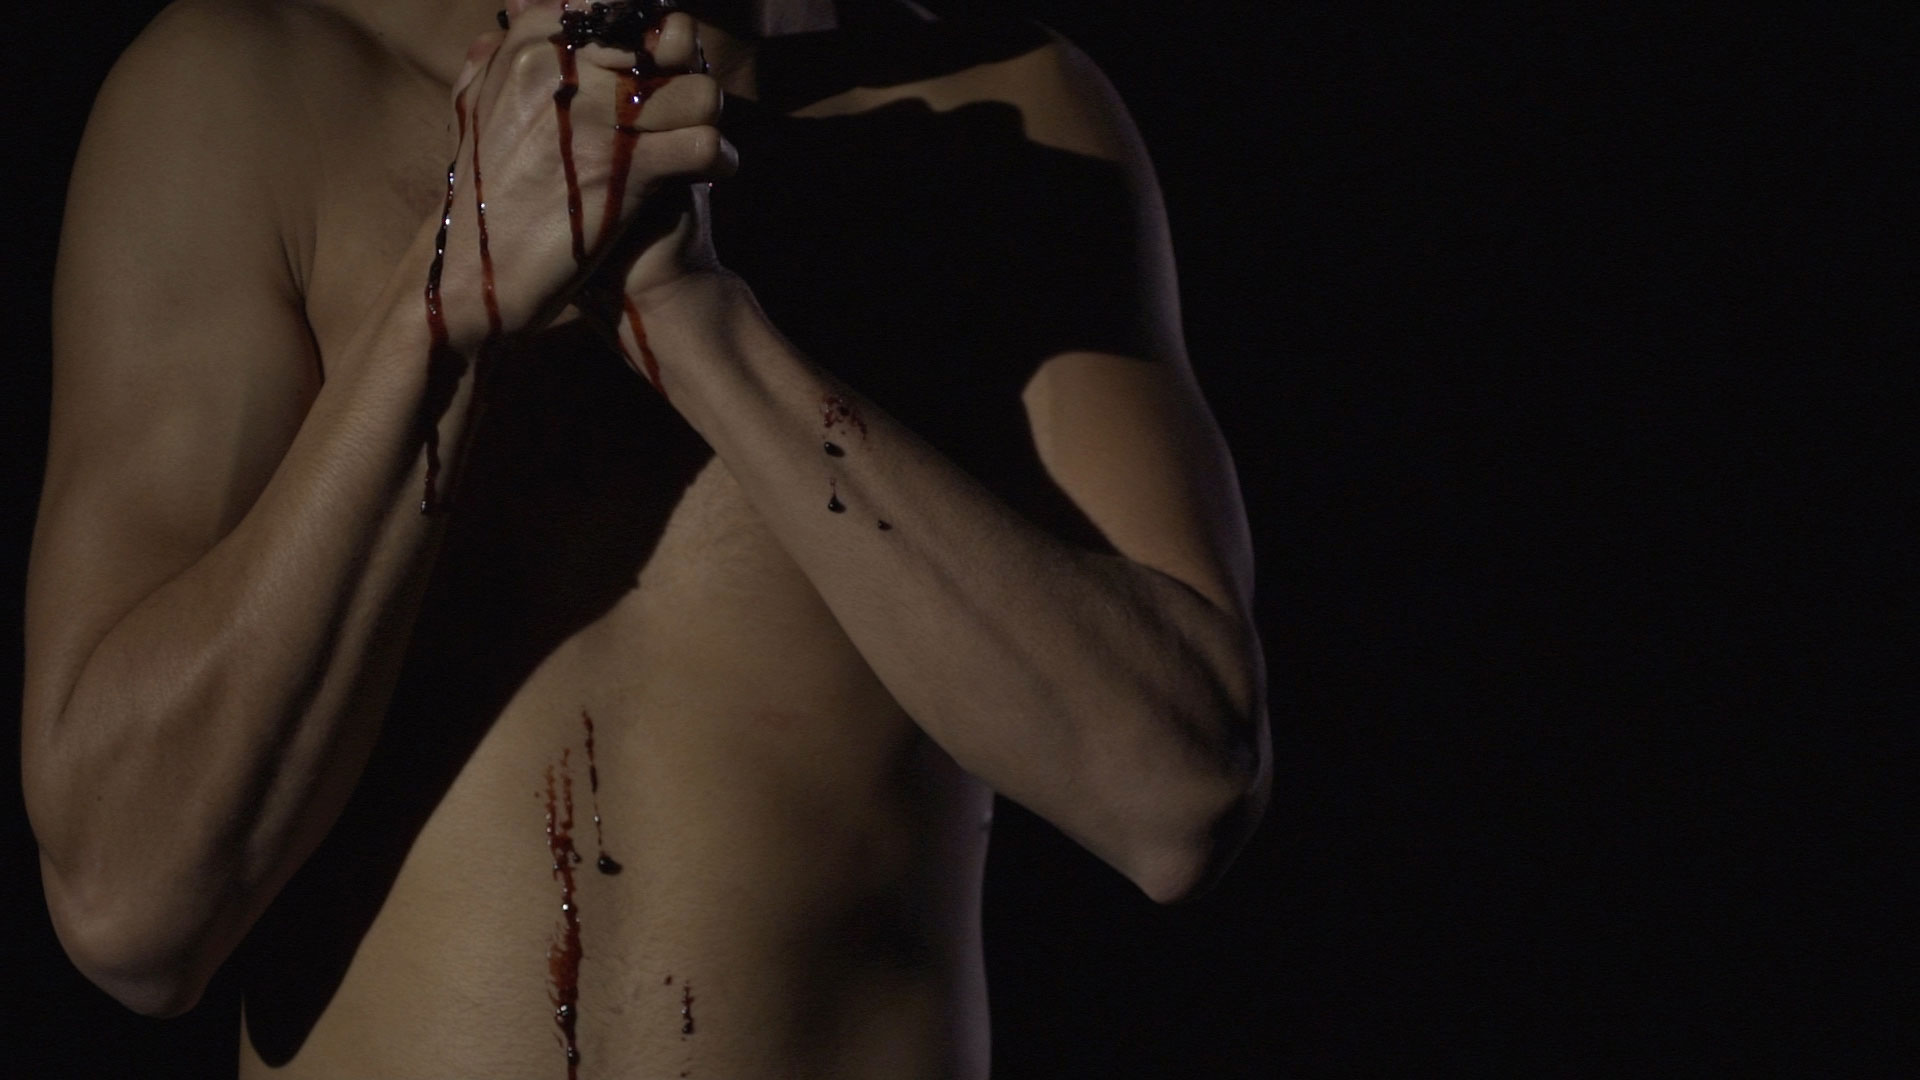 Still from 'Between Beauty & Horror.'